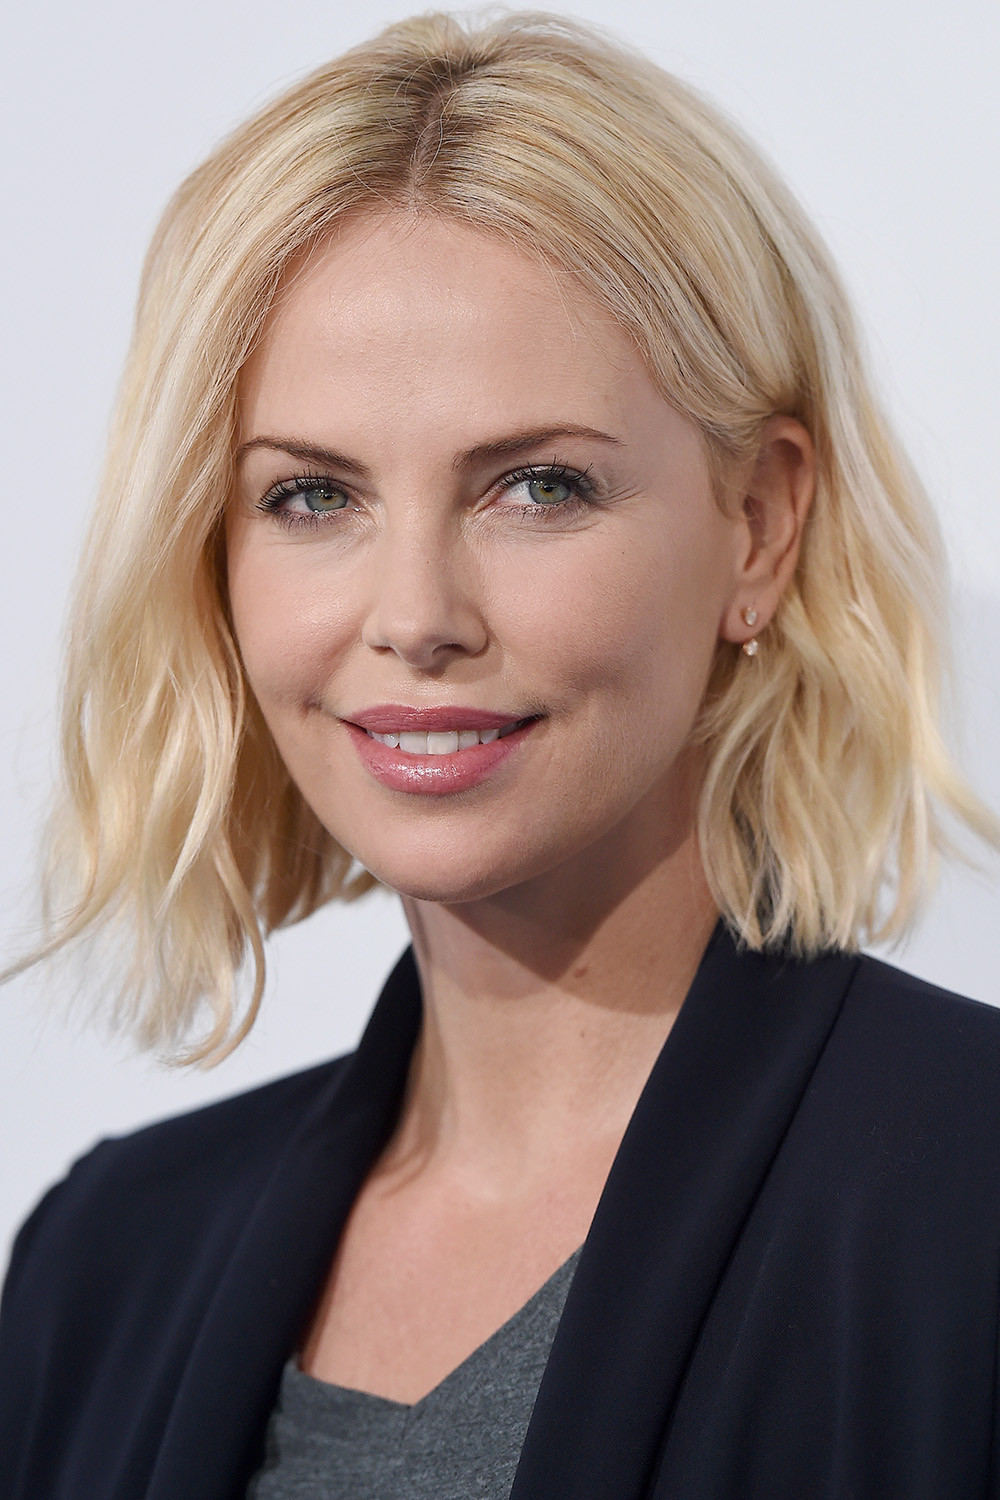 Best ideas about A Bob Hairstyle . Save or Pin Trendy Wavy Bob Haircuts To Win Hearts Now.